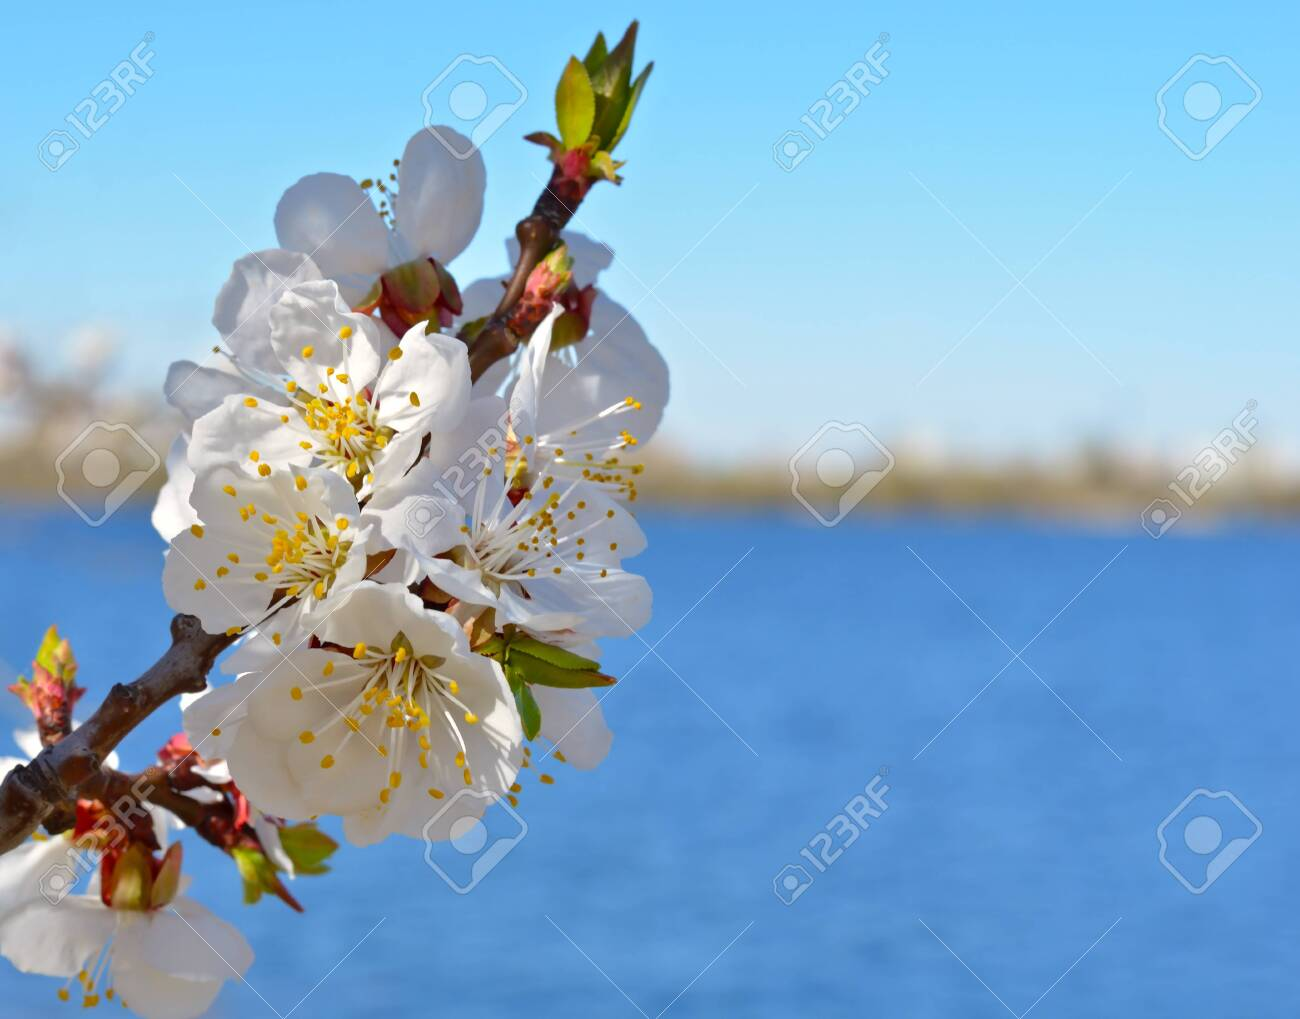 Spring nature background. Blooming apricot against the blue sky. - 121735980